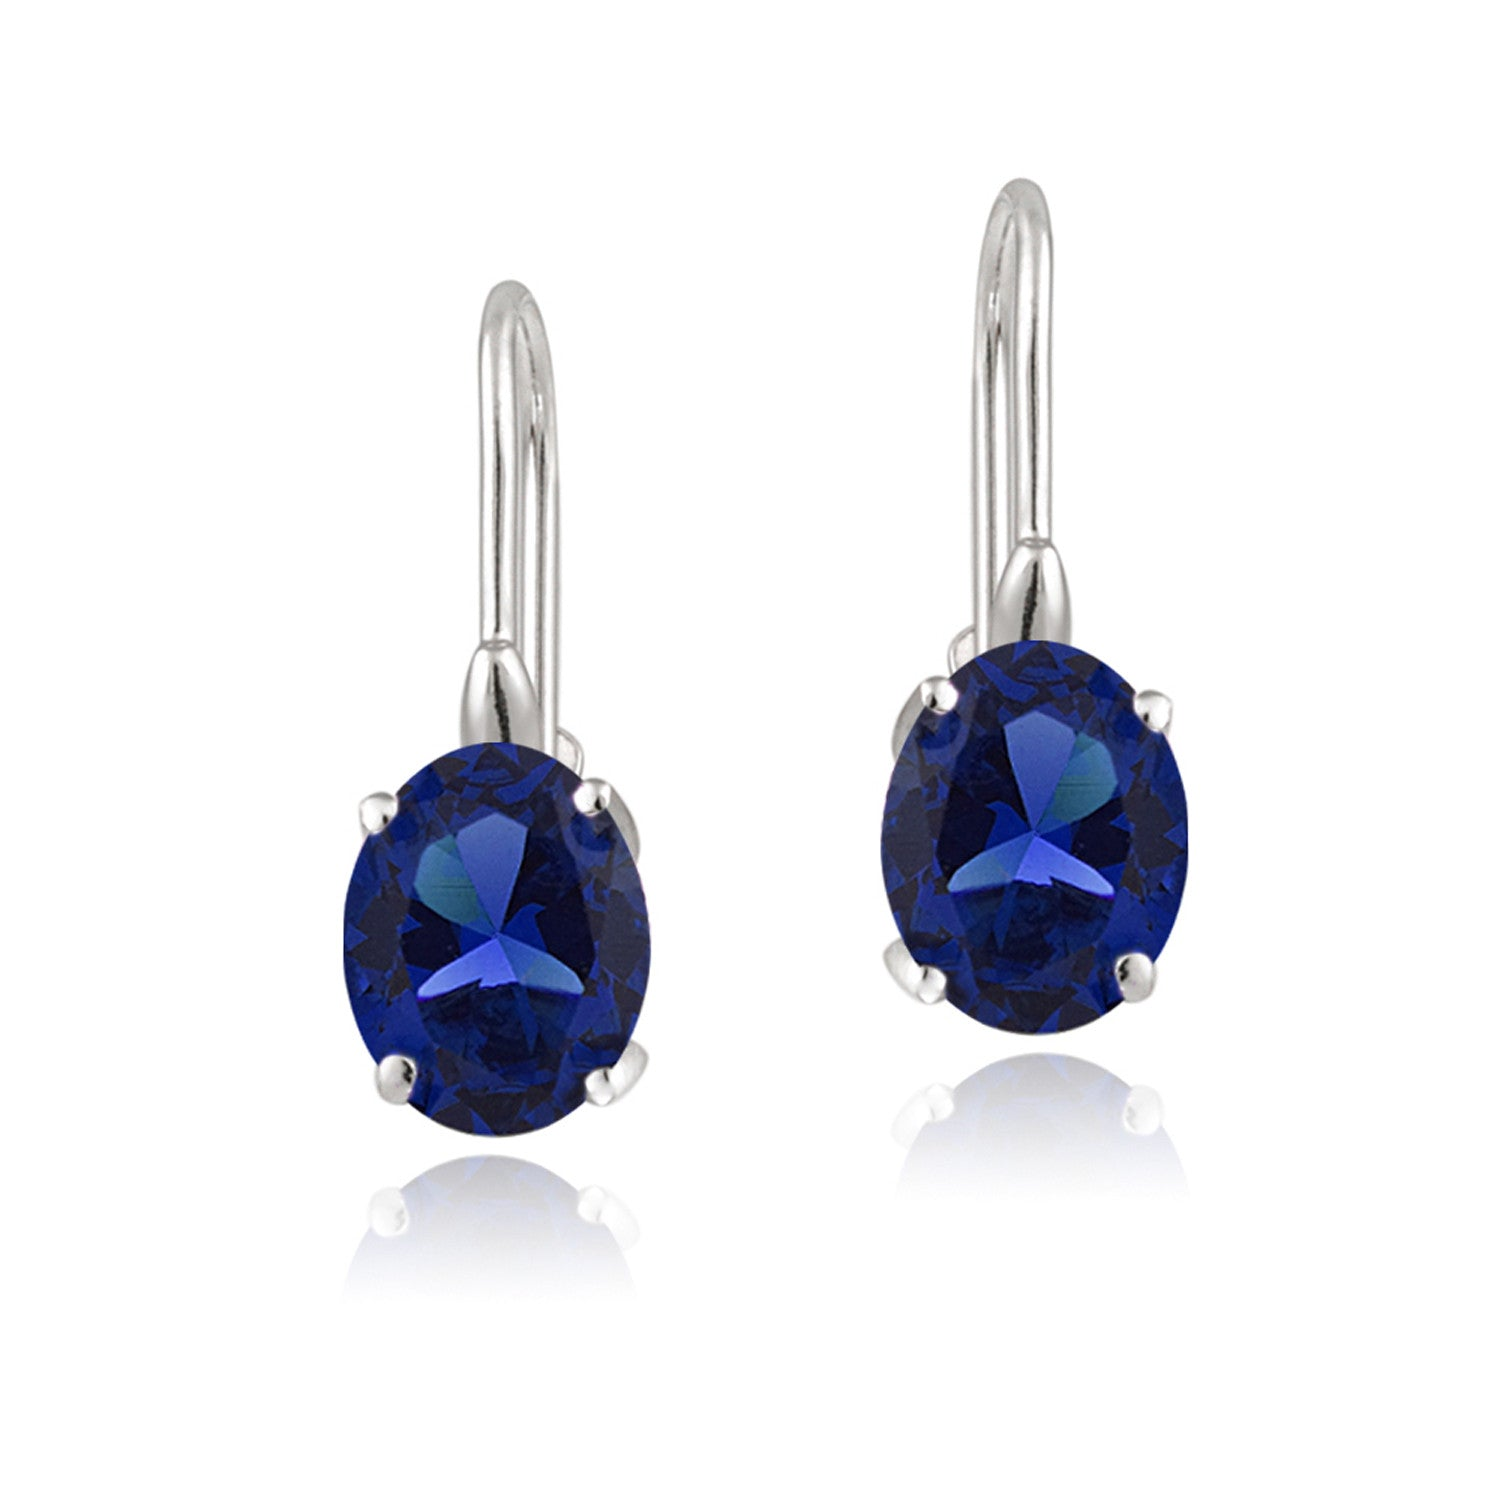 Sterling Silver Oval Cut Birthstone Leverback Dangle Earrings - September Created Sapphire